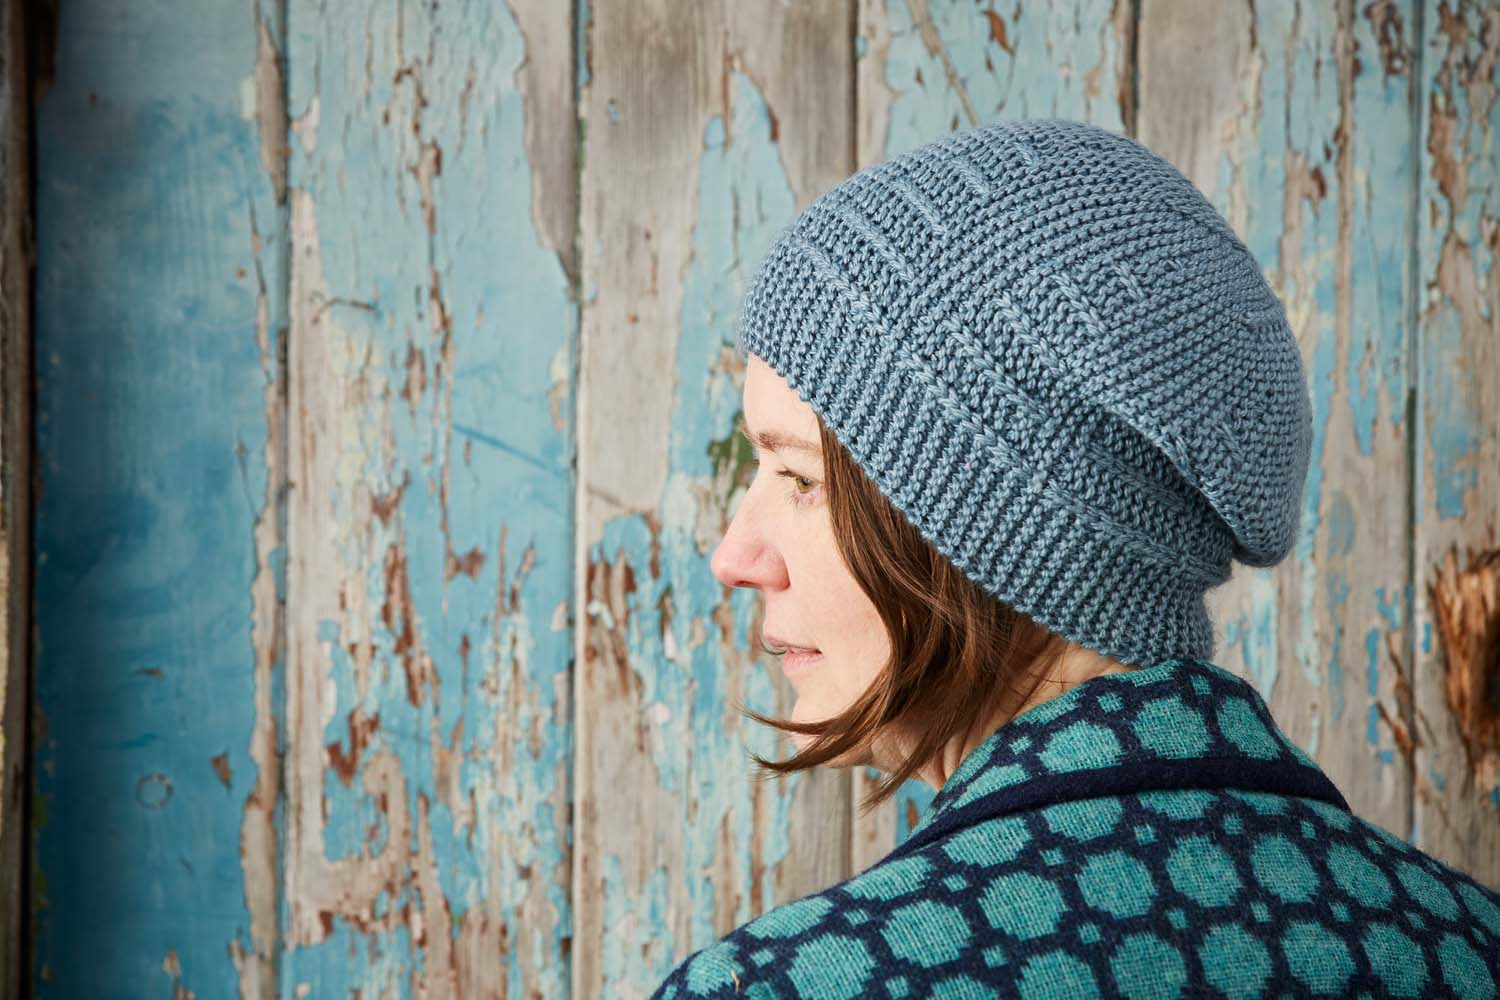 Woolly Wormhead's hat design for A Year of Techniques features short-row shaping. Image © Jesse Wild.